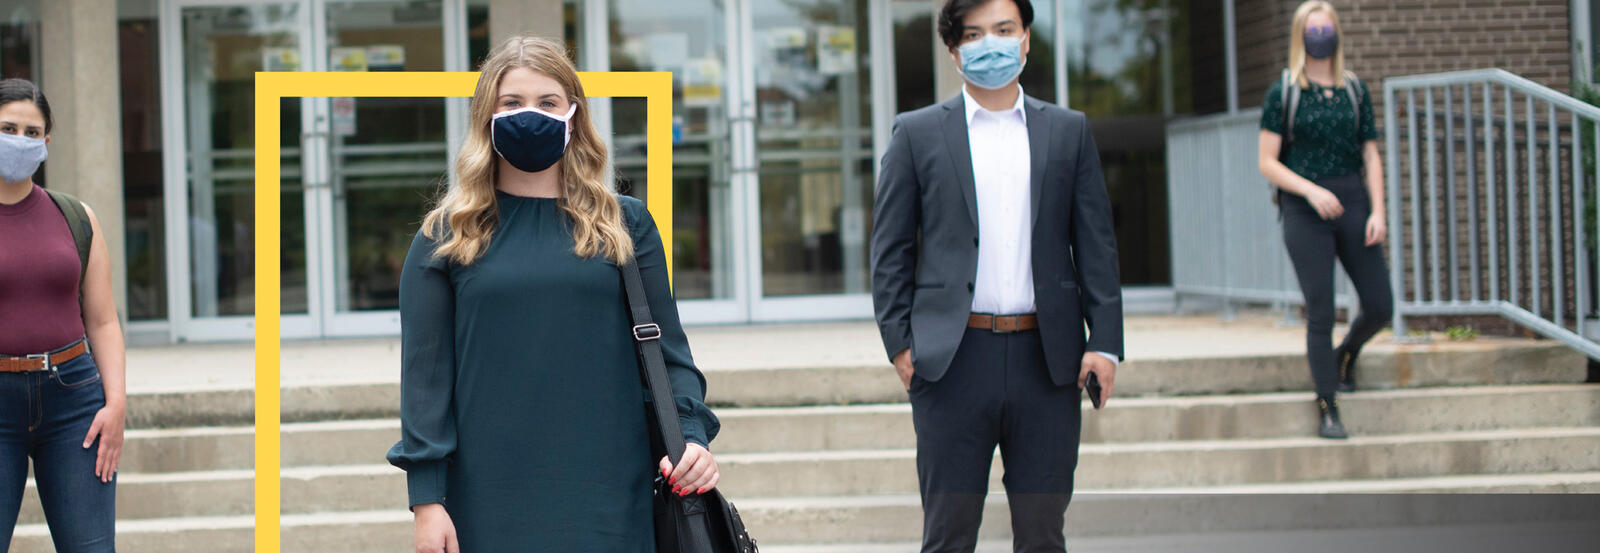 students wearing masks outside of a campus building